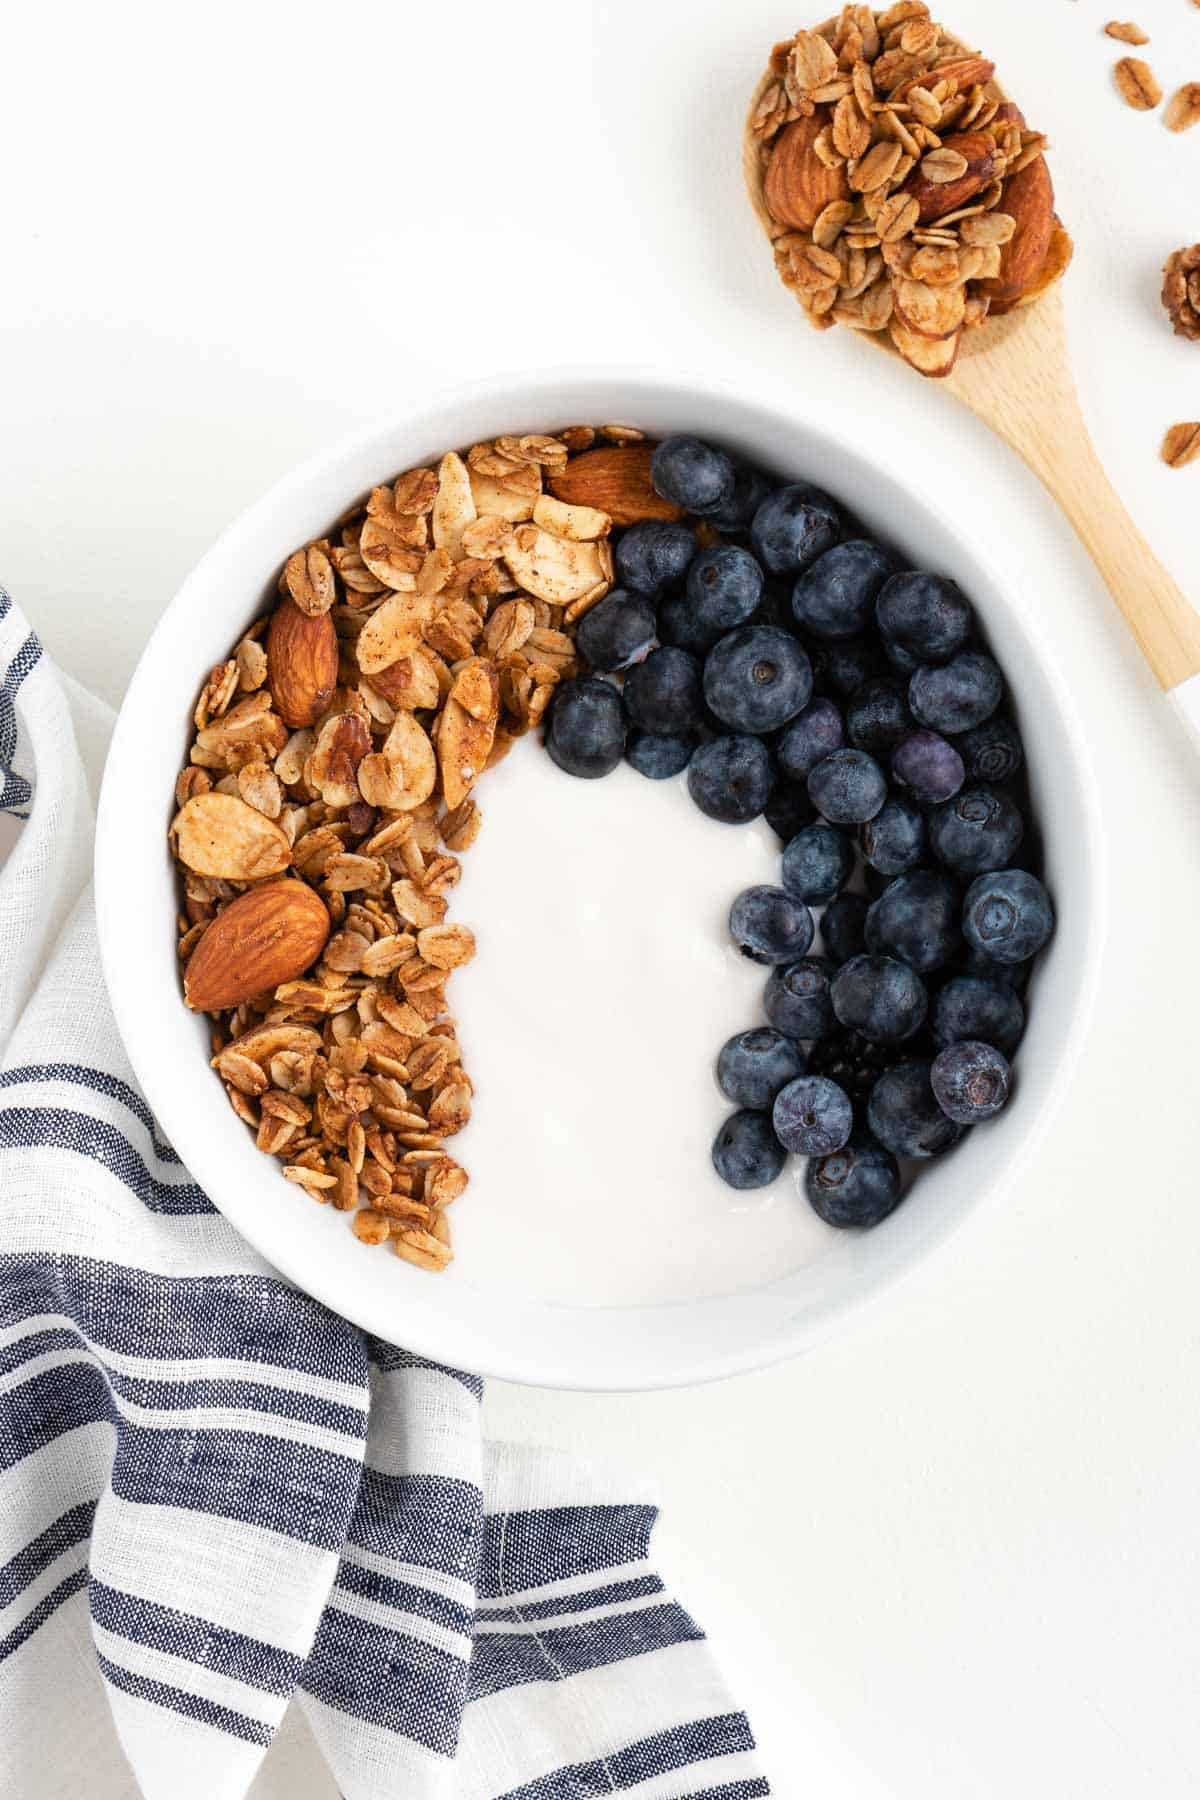 yogurt, granola, and blueberries inside a white bowl beside a blue and white striped napkin